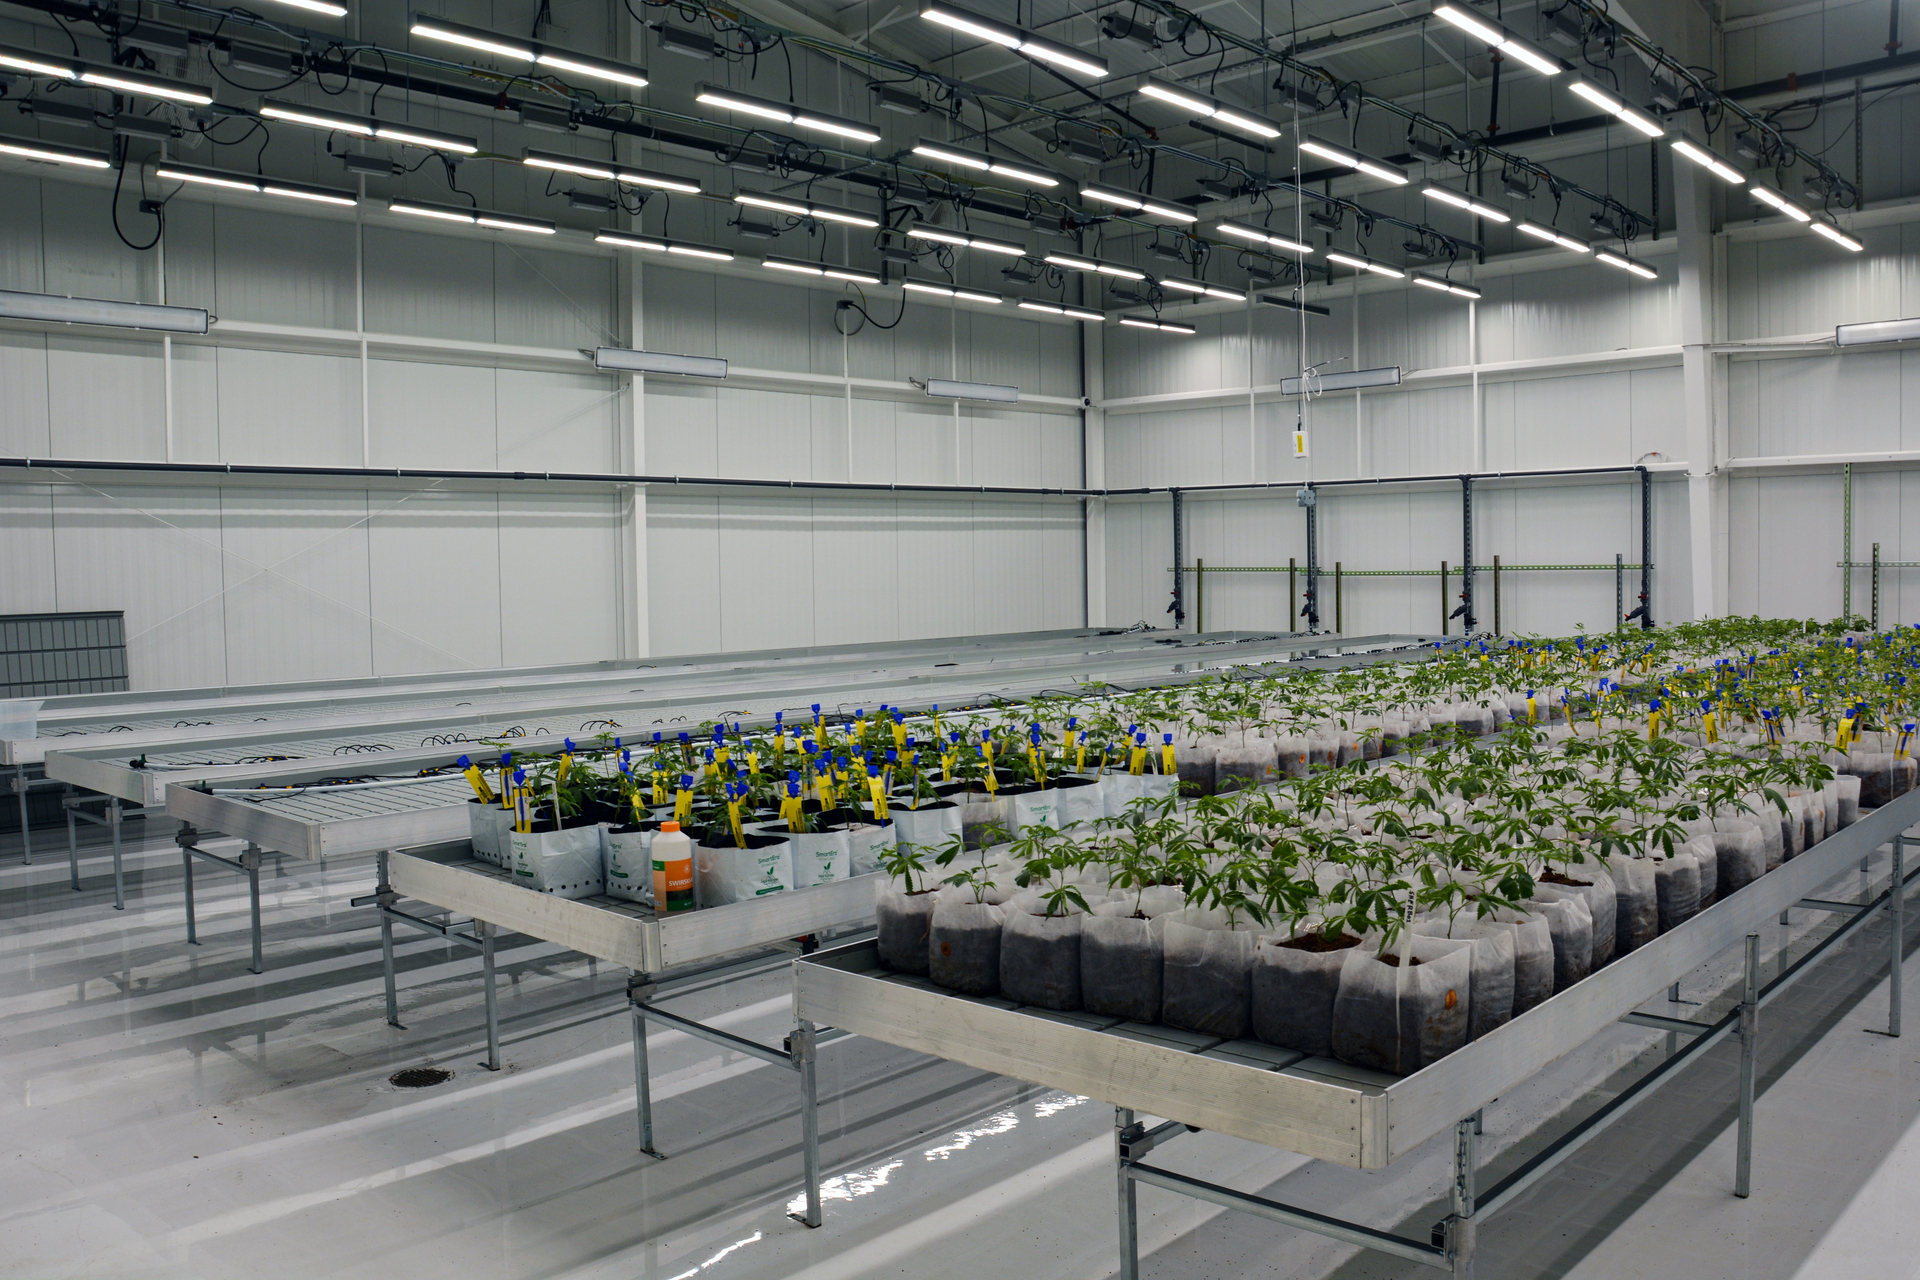 Uniquely positioned as the first farm-grown and biodynamically raised cannabis on the East Coast, Theory Wellness uses a sustainable business model focused on soil topography, environmental stewardship, and regenerative processes.